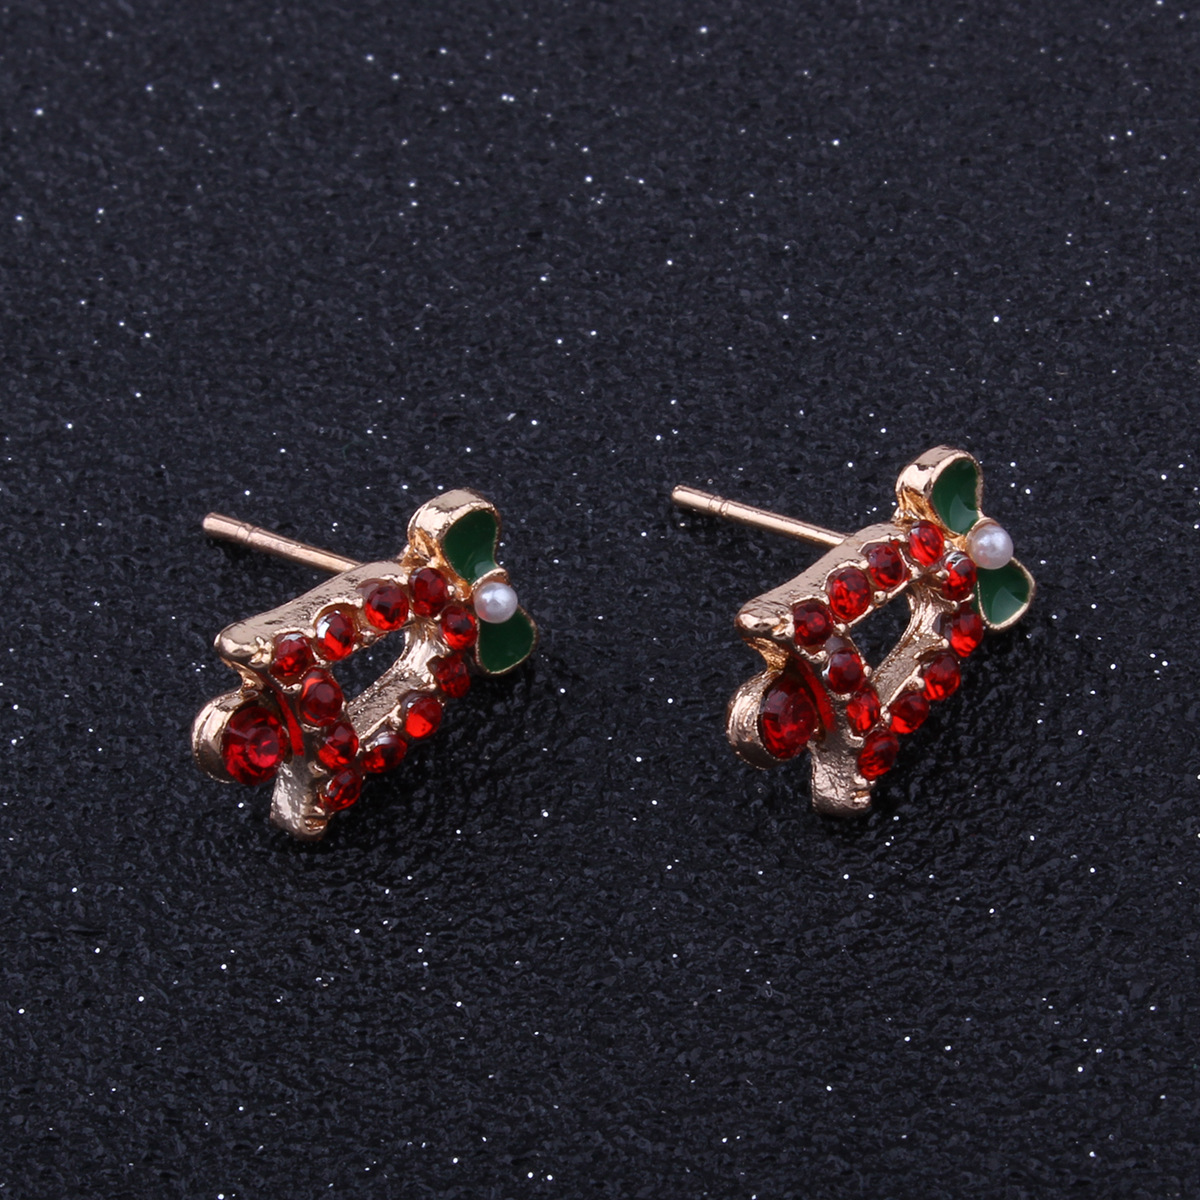 Occident and the United States alloy plating earring (E1097 Santa Claus)NHNMD3843-E1097 Santa Claus